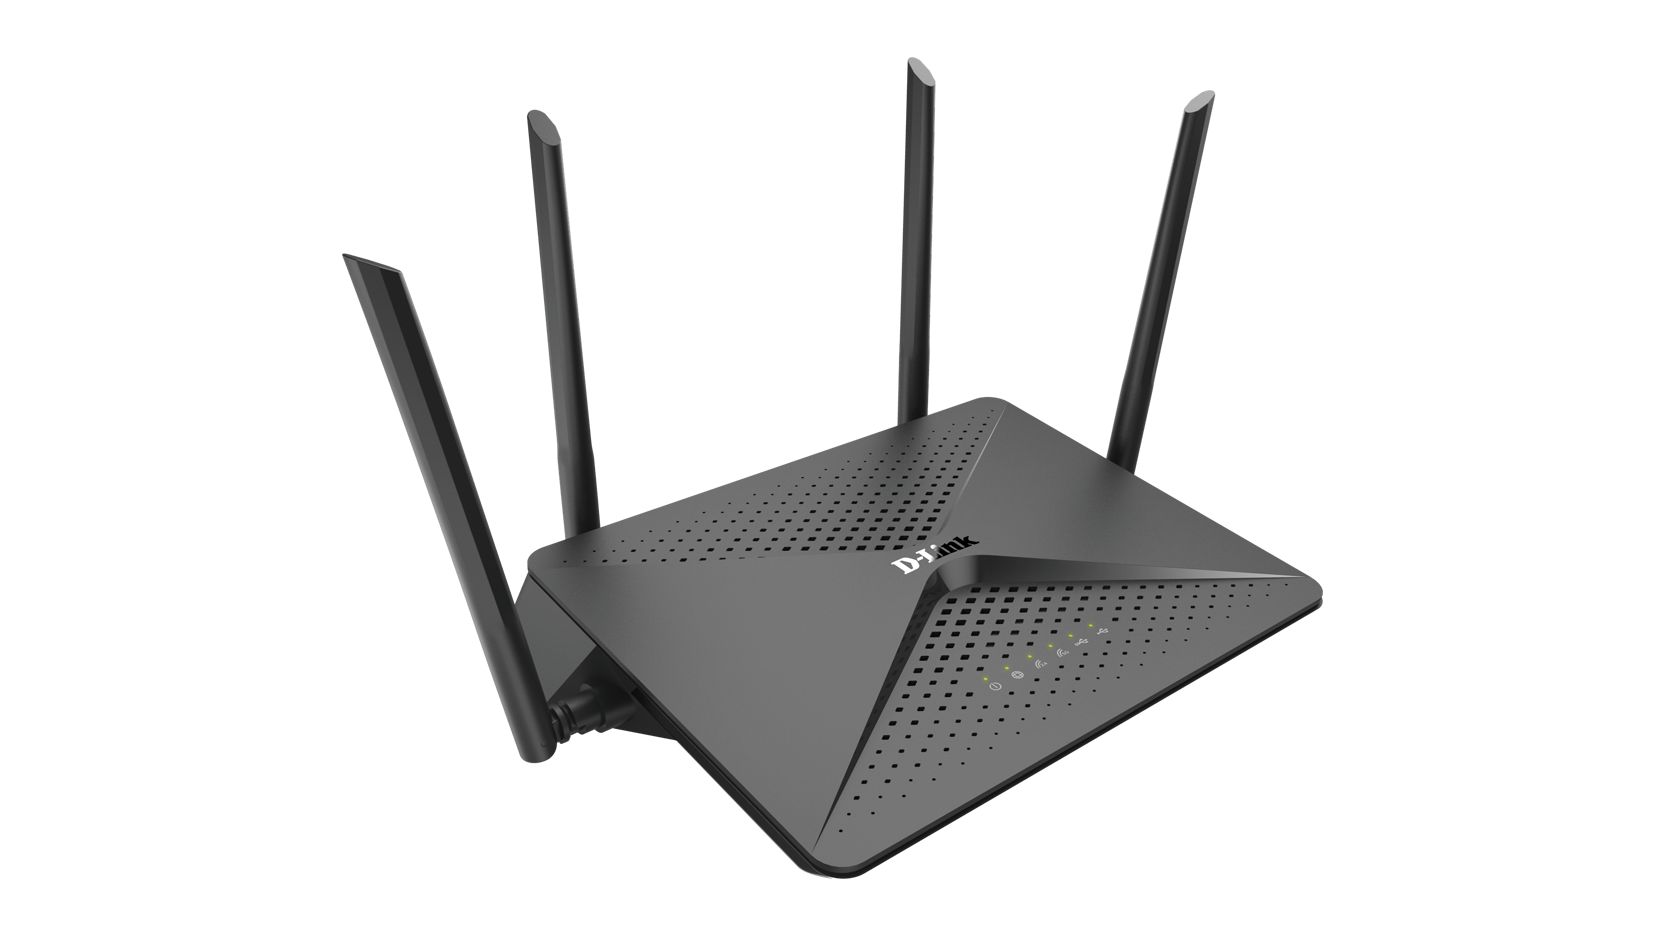 AC2600 MU-MIMO Wi-Fi Router | D-Link